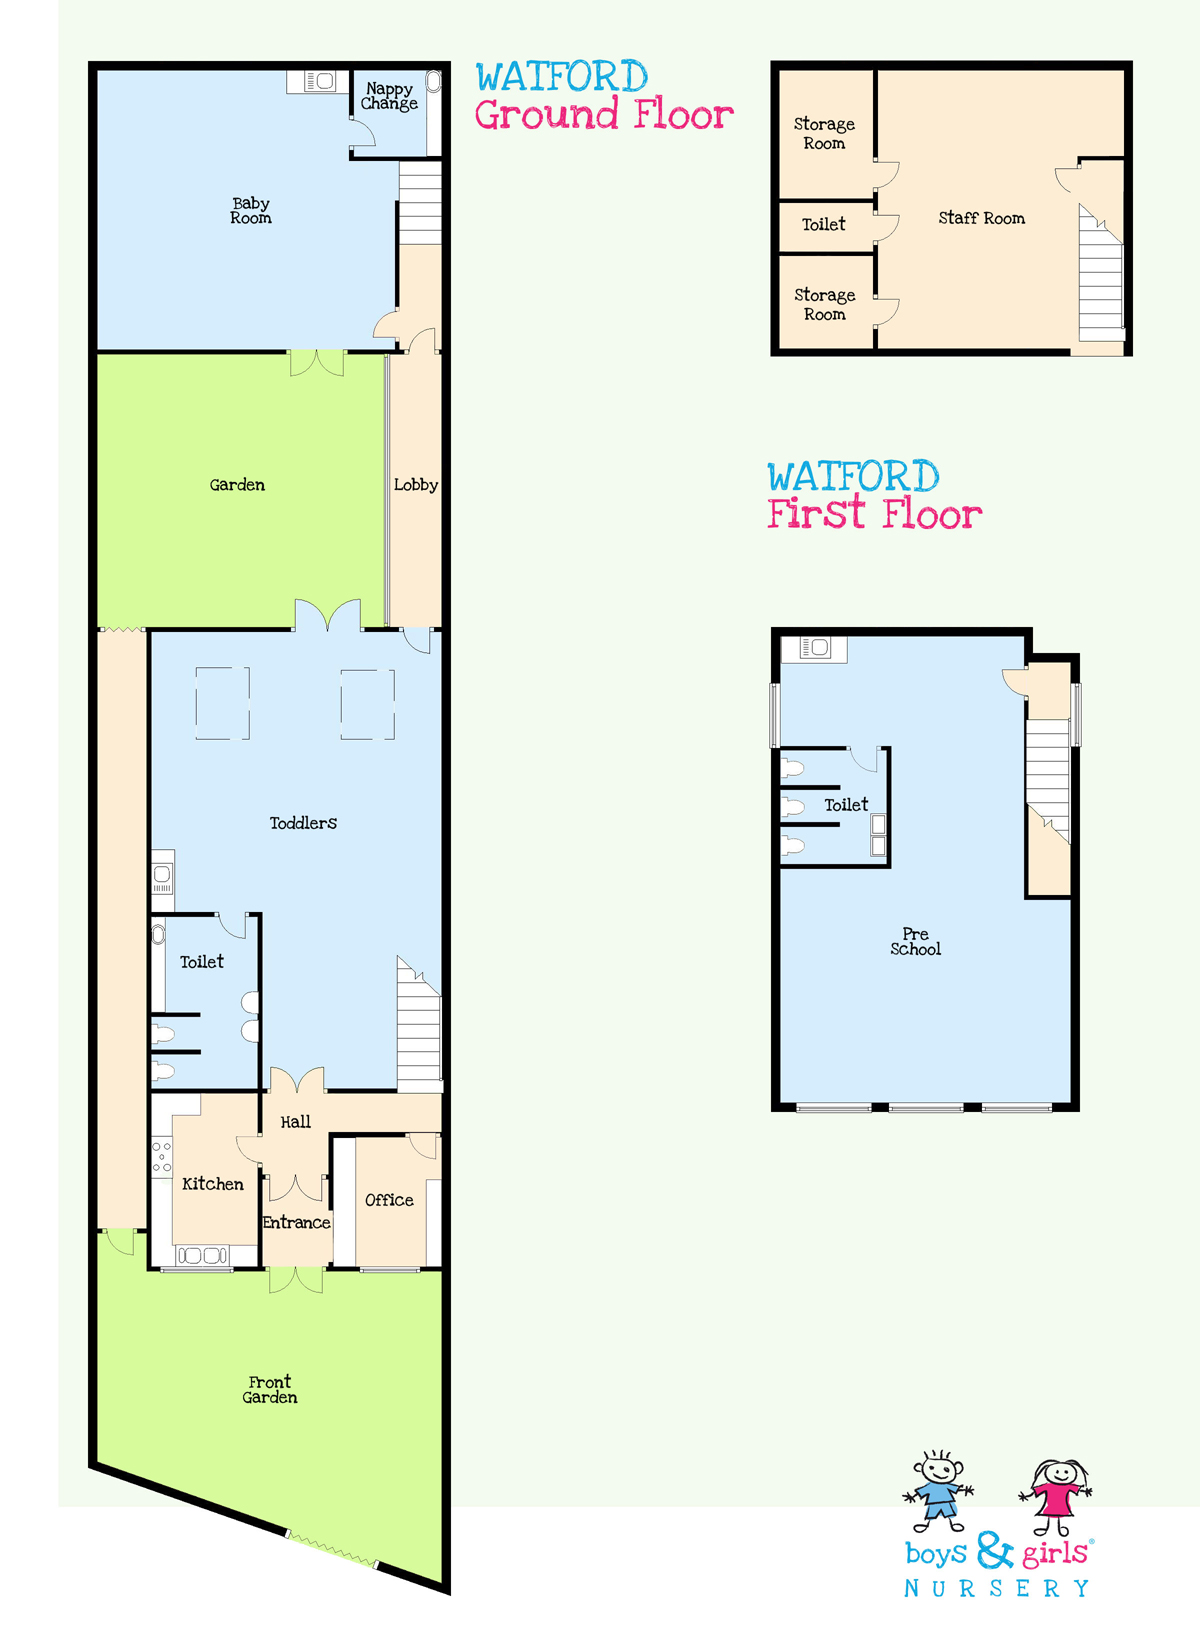 Preschool nursery watford boys girls nursery for Floor plan websites